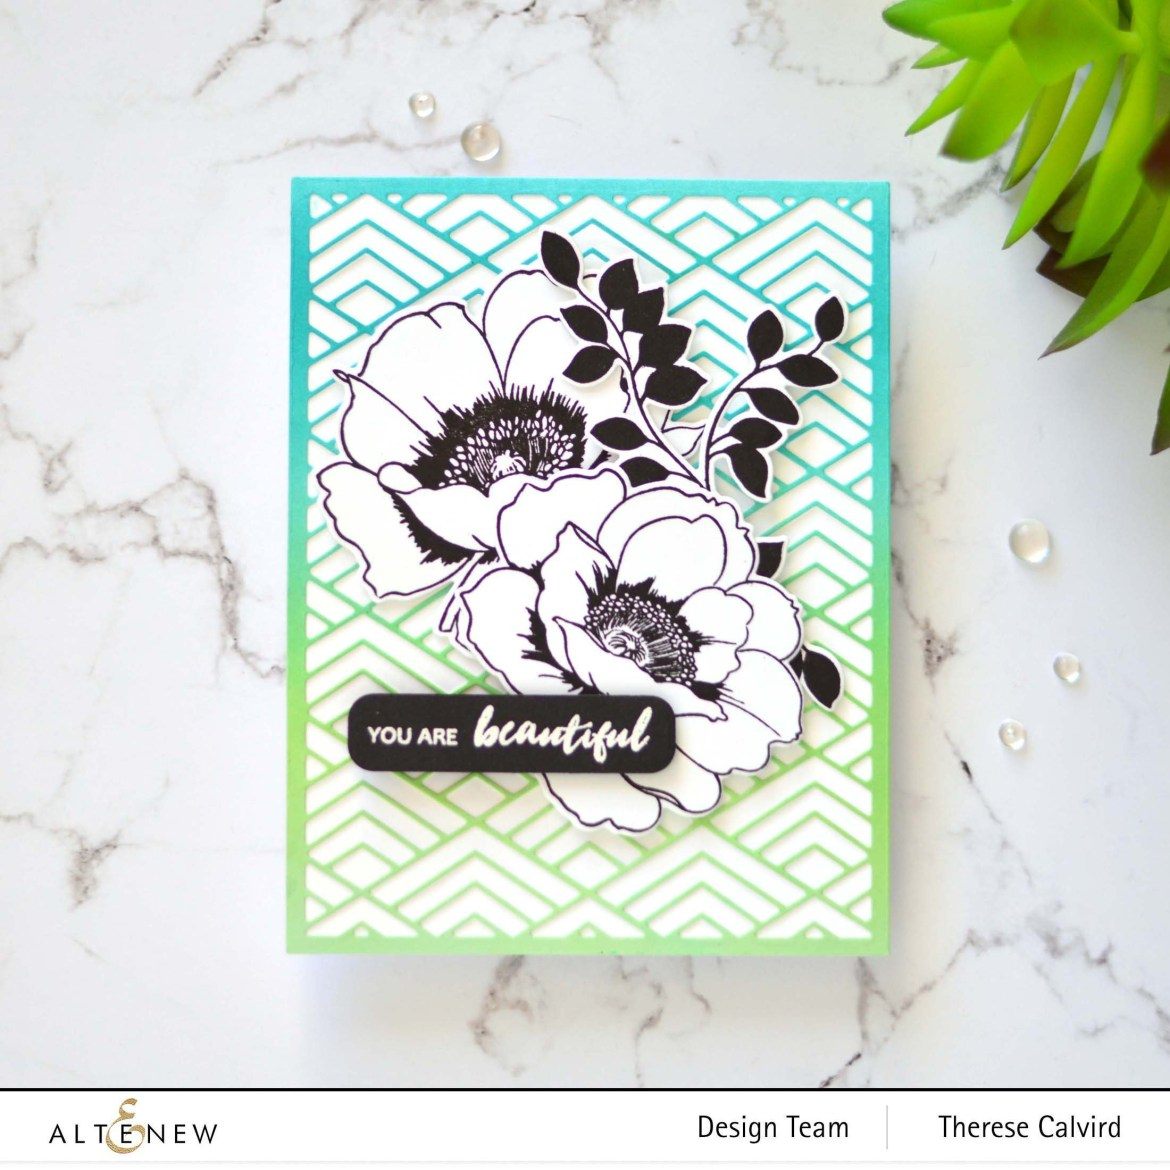 Altenew - Stacked Diamonds Cover Die - Featured Sentiments Die - Wallpaper Art - Take 2 With Therese (card video) 1 copy